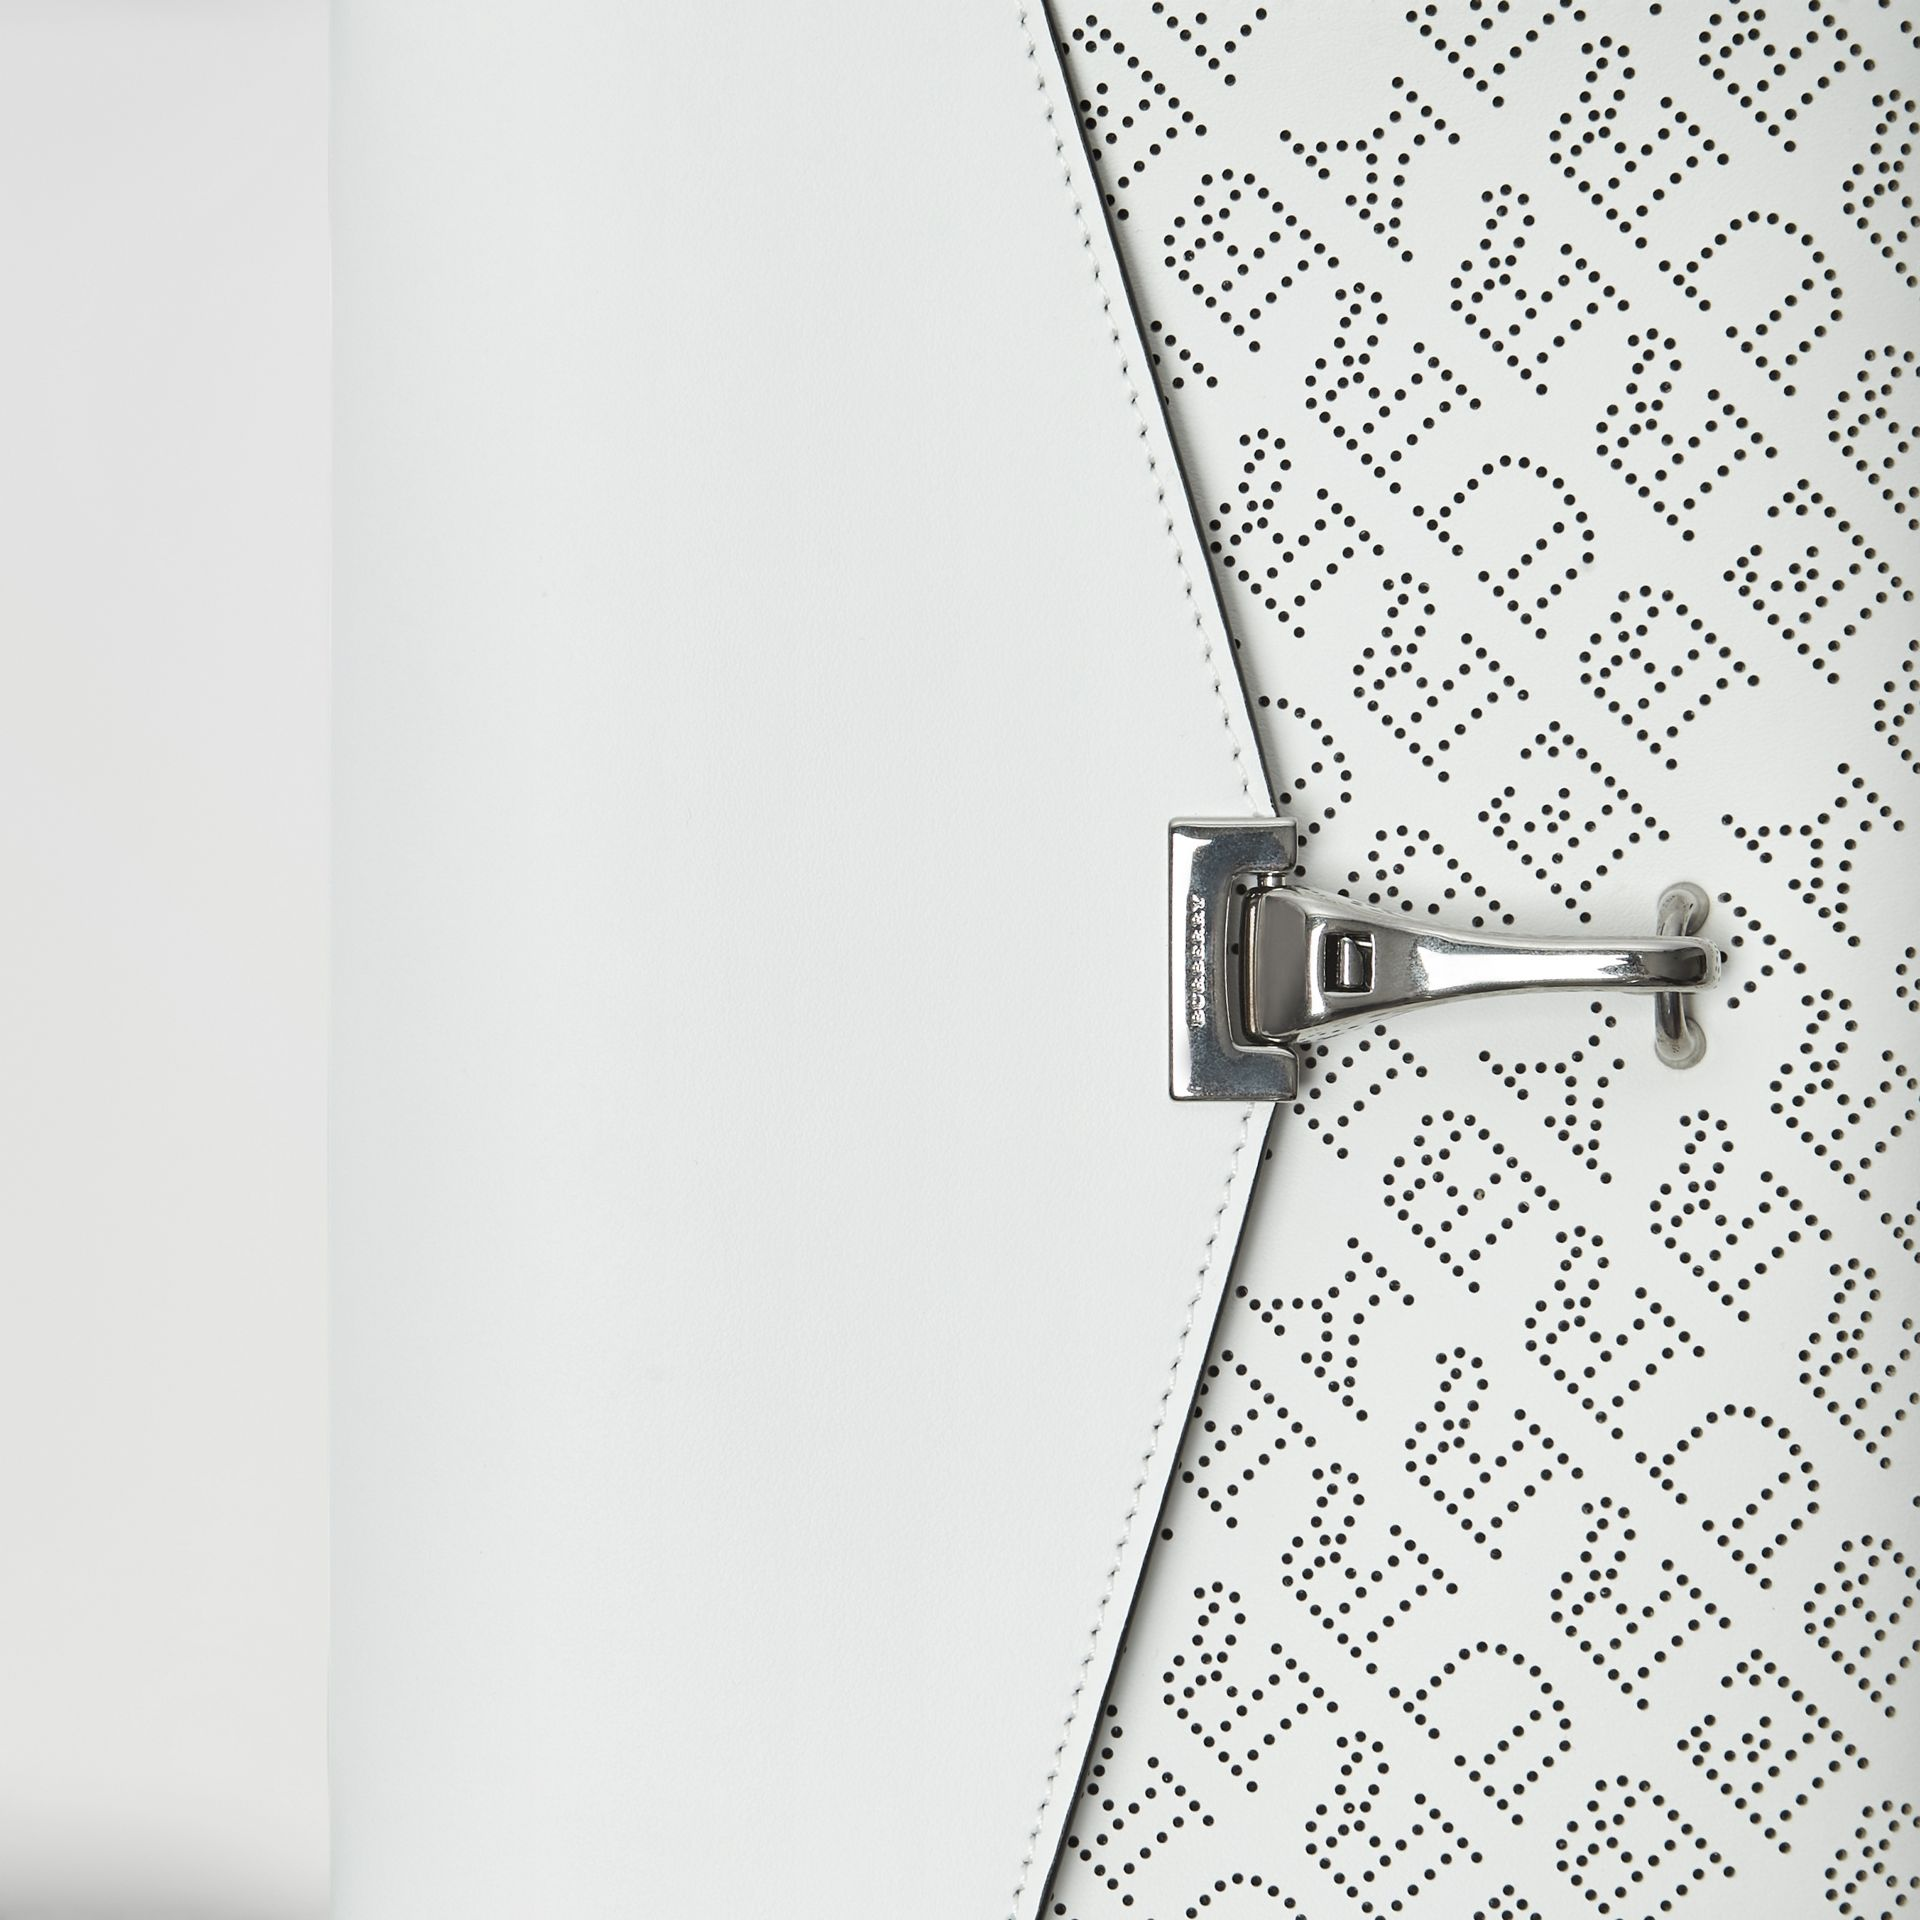 Small Perforated Logo Leather Crossbody Bag in Chalk White - Women | Burberry United States - gallery image 1